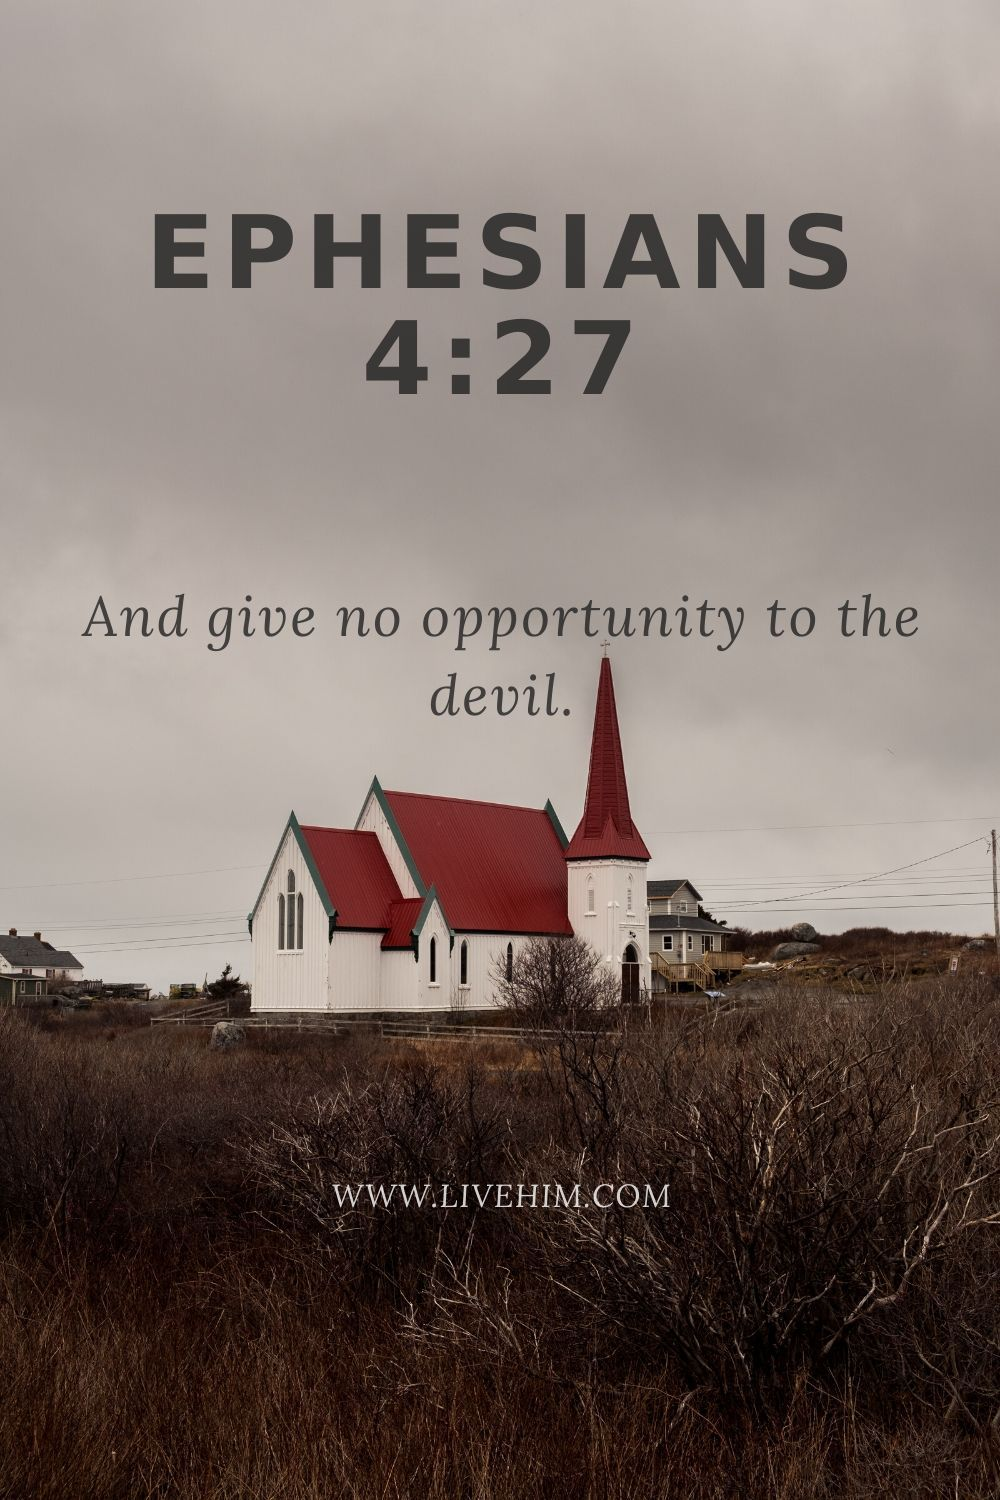 Bible Verses to Help Fight Anger in 2020 | Live Him